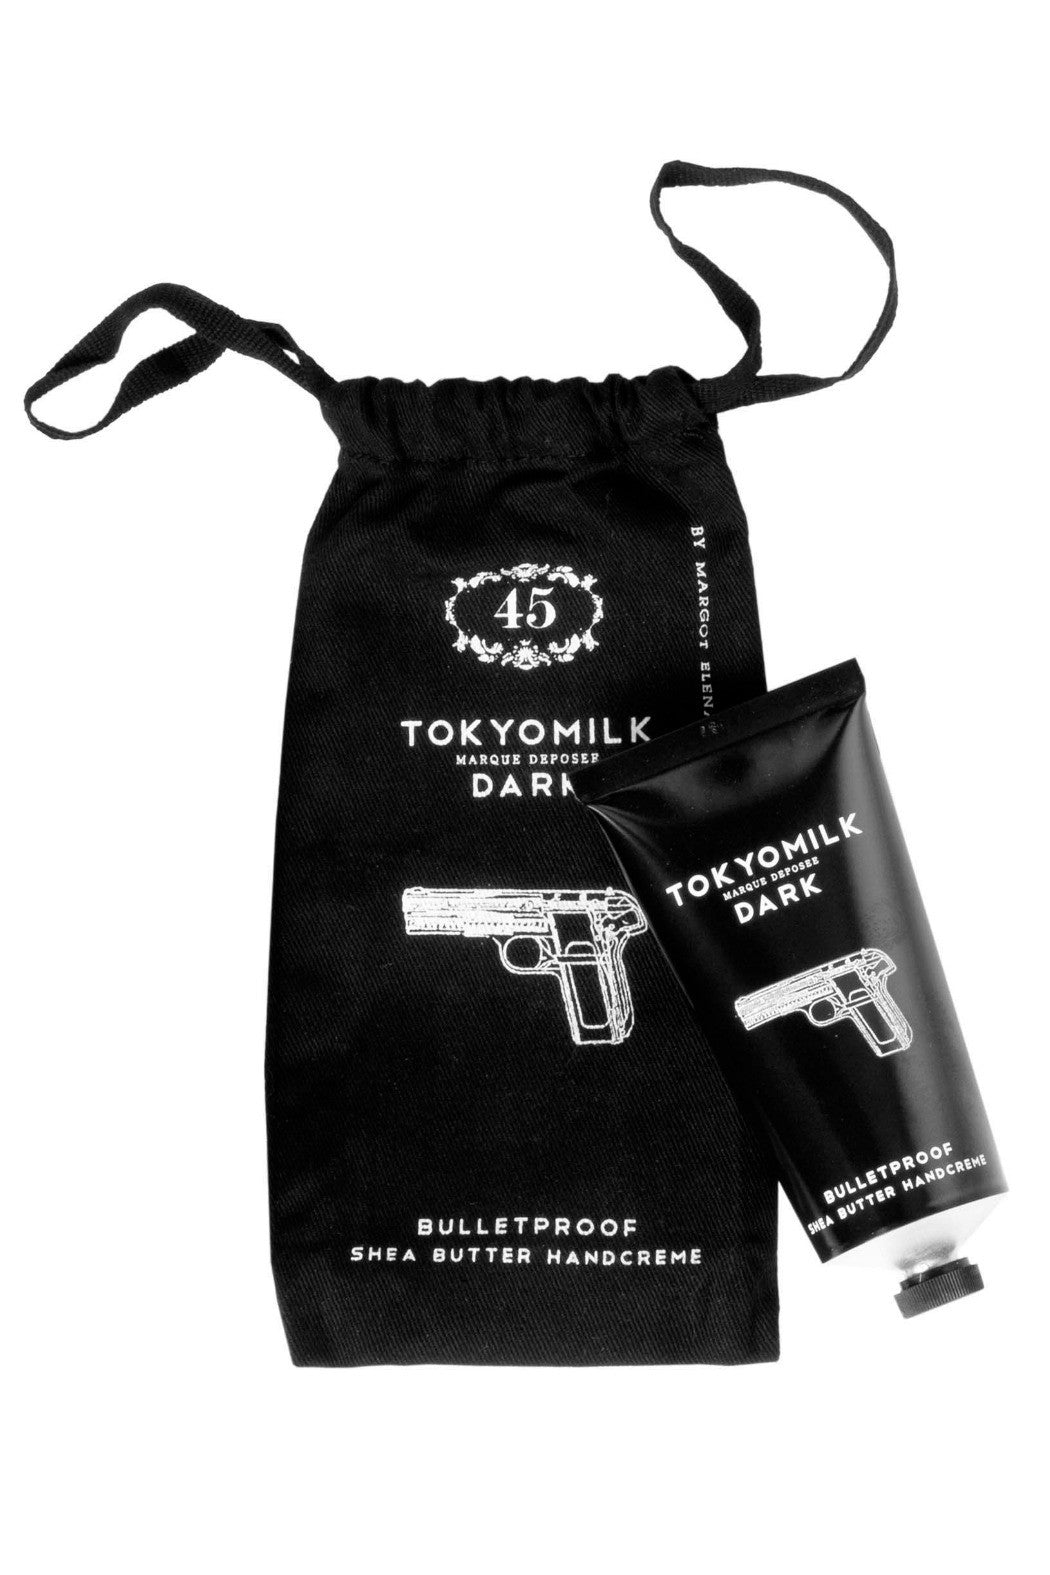 Tokyo Milk Dark - Bulletproof No. 45 Handcream - R+D Hipster Emporium | Womens & Mens Clothing - 1